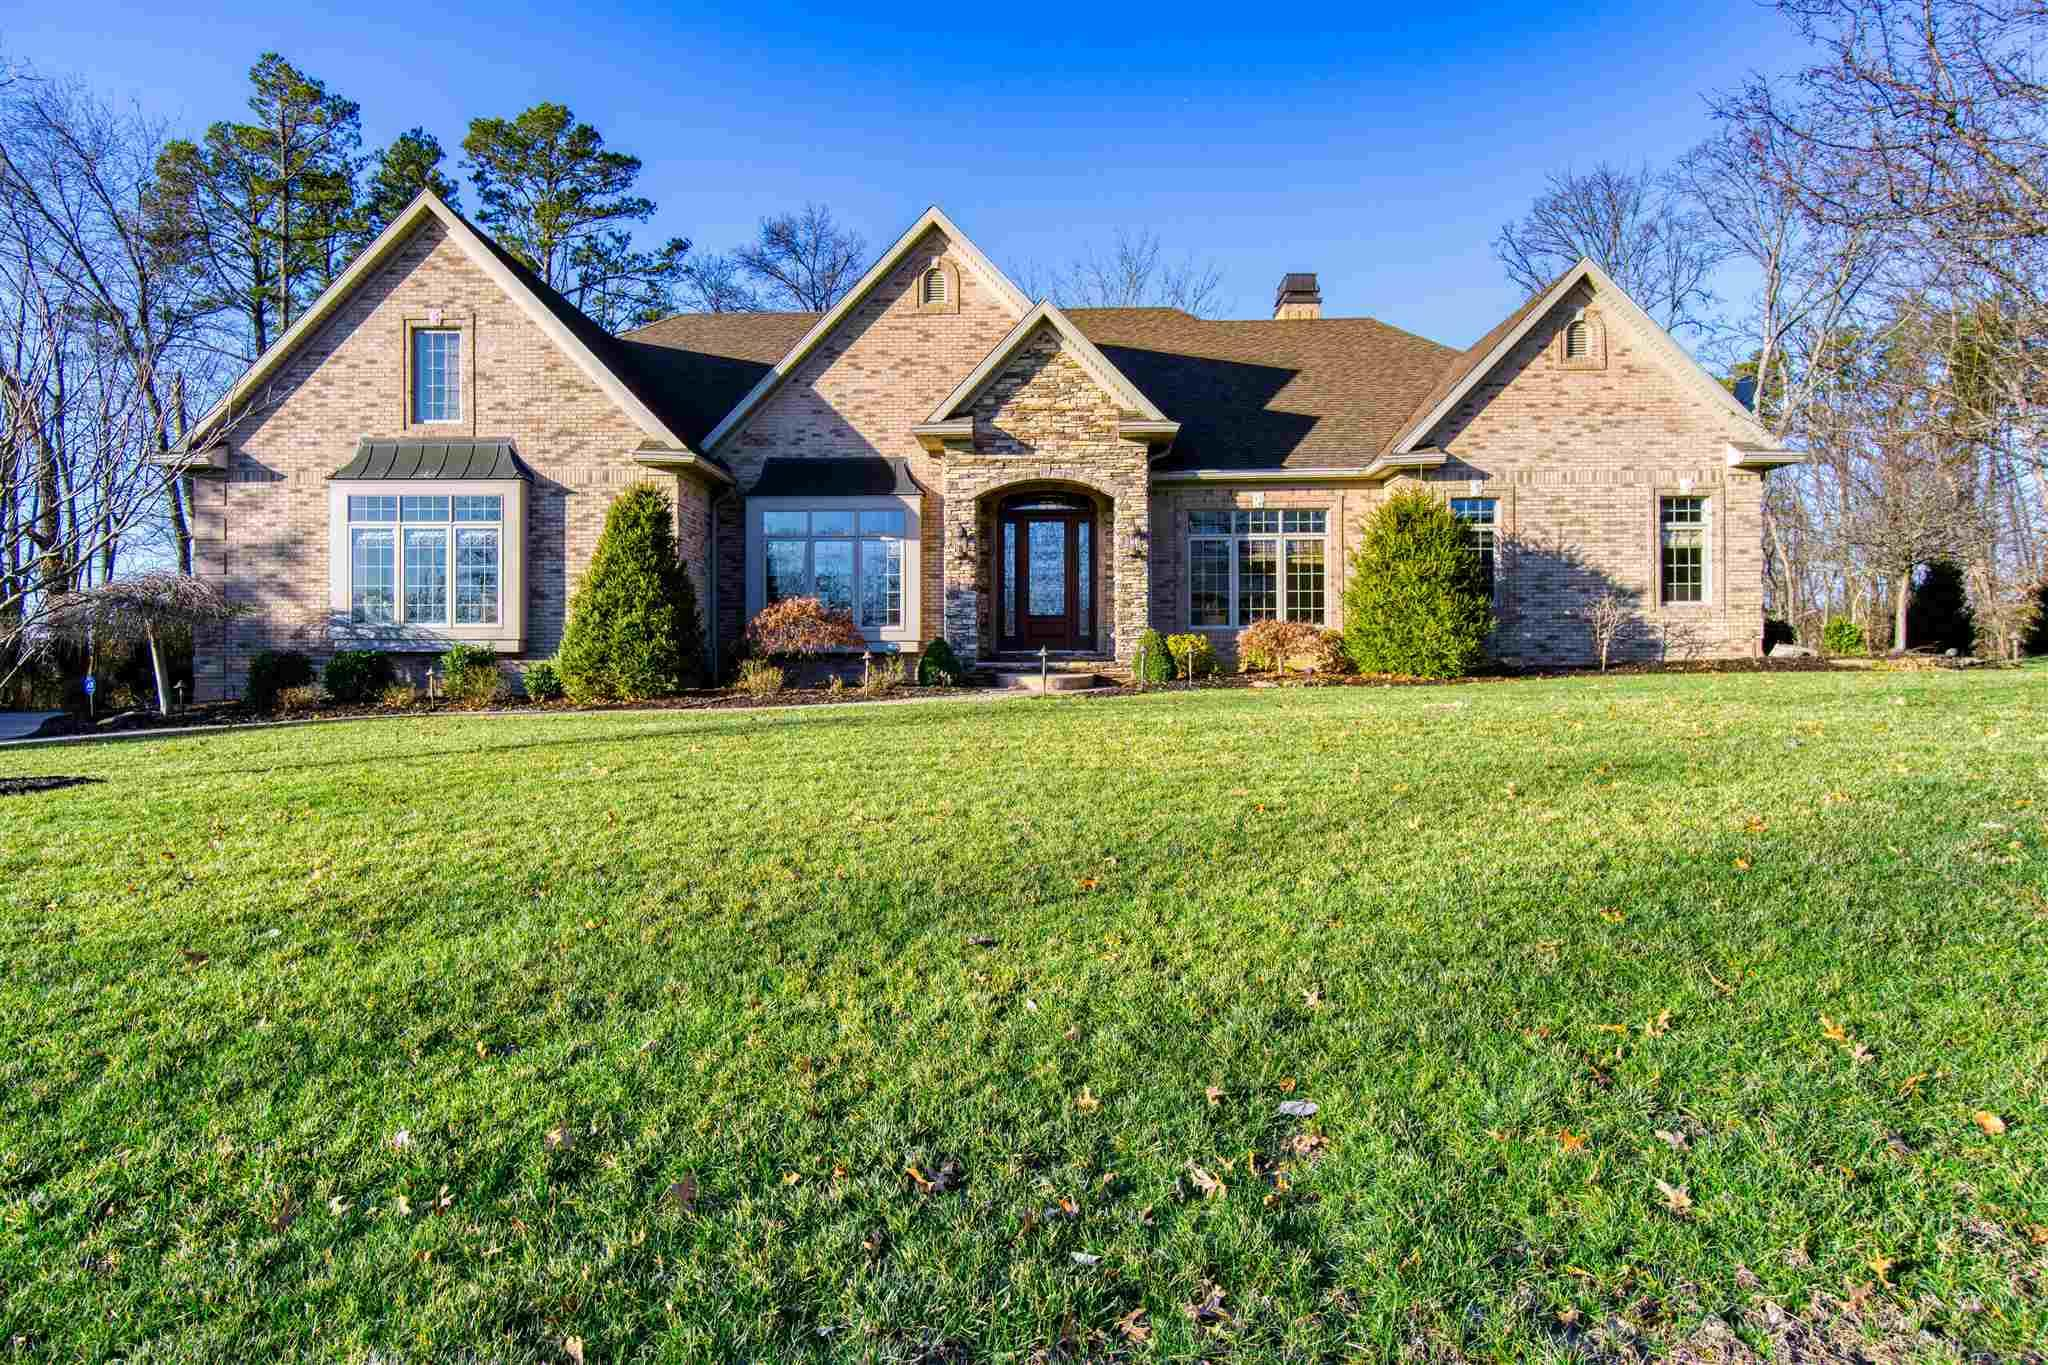 """Welcome to this exquisite custom-built brick ranch home peacefully situated on 2.5 acres on a private cul-de-sac. This immaculate home has been exceptionally maintained and shows like new construction.  Upon arrival you will fall in love with the setting, the stone and stamped concrete driveway, and the meticulously kept lawn and landscaping. Great curb appeal is just the beginning! As you enter the home, you will be impressed by 14' ceilings, an open floor plan, and an abundance of natural light. Quality construction is evident as you see the beautiful arched entry to the sitting room/office, 14' columns defining the dining room, 9.5"""" baseboards, and triple crown molding. Both the sitting room and dining room offer elegant lit tray ceilings and large windows. Continuing on you will be in awe of the expansive great room and kitchen with coffered ceilings,  wood burning stone fireplace with gas starter, built in bookcases, and an entire wall of windows that make the living space comfortable and cozy!  The gourmet kitchen starts with plenty of quality cabinetry, granite counter tops, stainless steel appliances; 6 burner gas cook top, double ovens, a warming drawer, dishwasher, microwave, ice maker, wine refrigerator, and trash compactor. Extras include a pot filler, roll out cabinet shelves, pantry, island with a prep sink/disposal, wet bar with its own sink, and the double kitchen sink/disposal. The kitchen offers plenty of counter space, bar top seating, planning desk, and breakfast nook and is open to the living area, making it the perfect place for entertaining. Outside, just off the kitchen, you'll find a screened in porch and large deck that overlook the wooded lot offering plenty of space for relaxation. The tv and the hot tub are included in sale. Rounding out this impressive home are 3 bedrooms (possibly 4) each with their own full bath, a huge bonus room that could easily be converted into a bedroom and bonus room, a laundry room, 2 half baths, and a master """